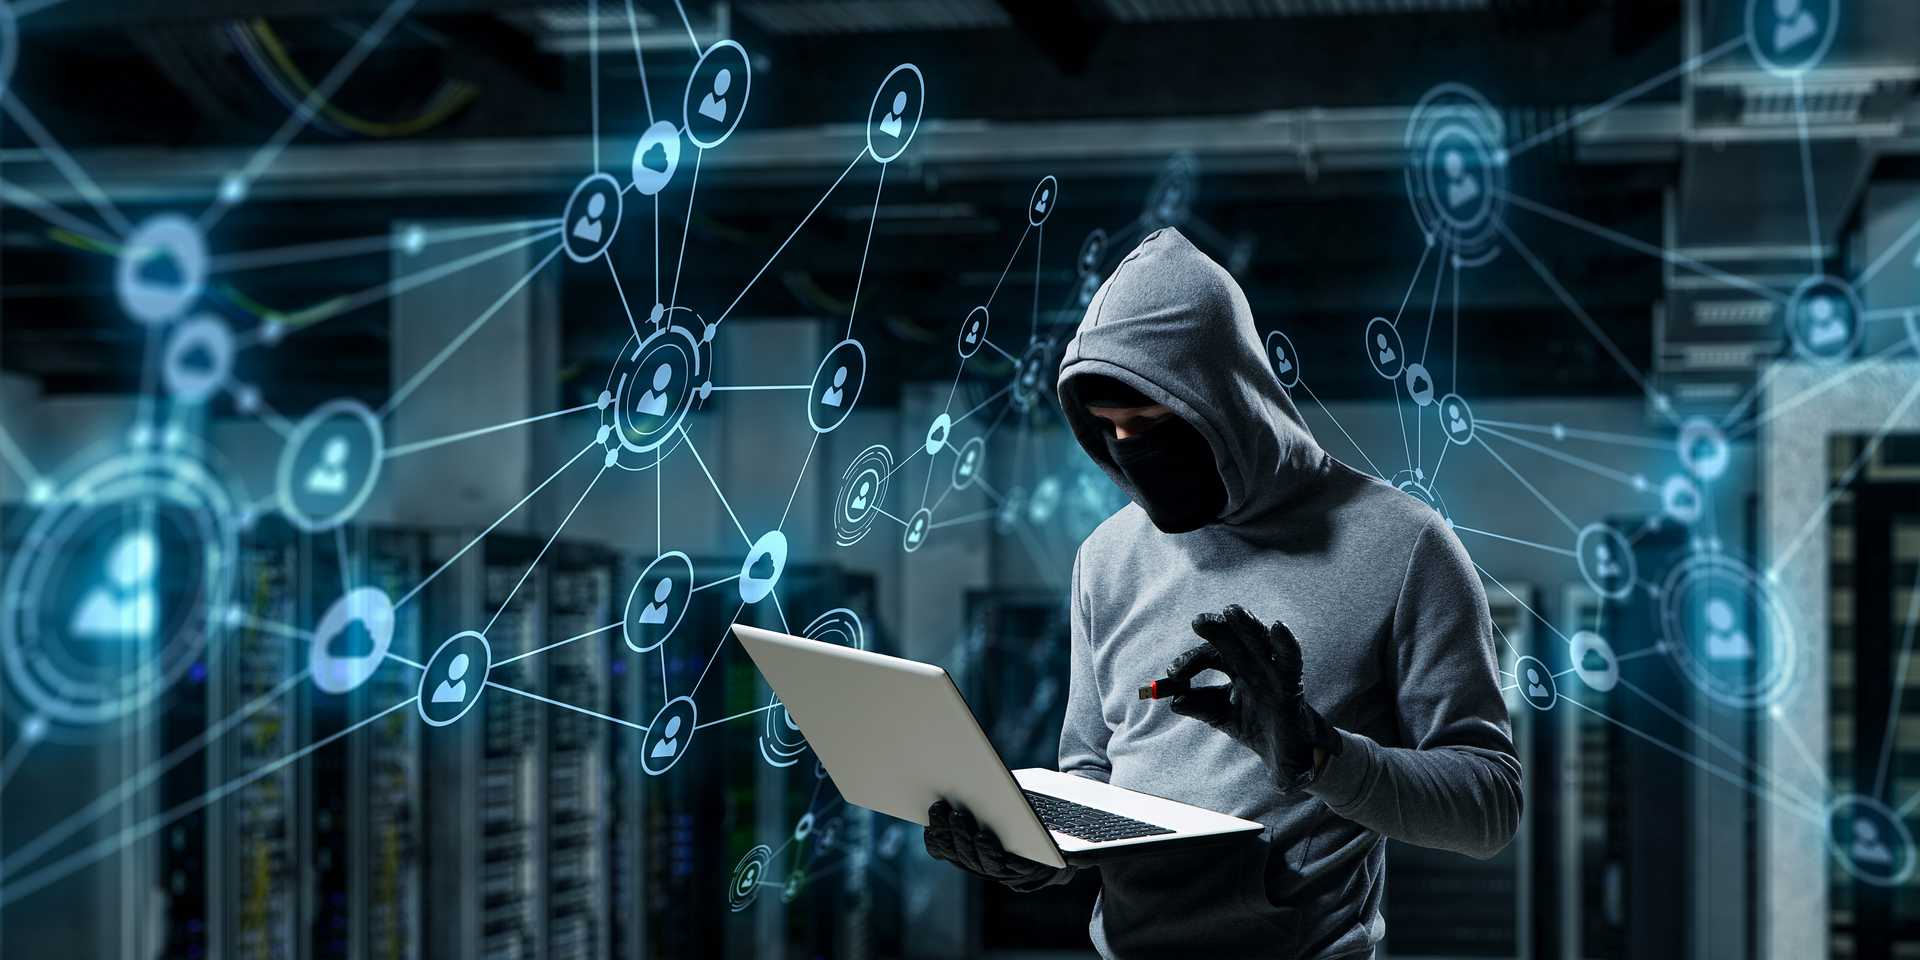 CYBER ATTACKS IN THE AIRLINES INDUSTRY